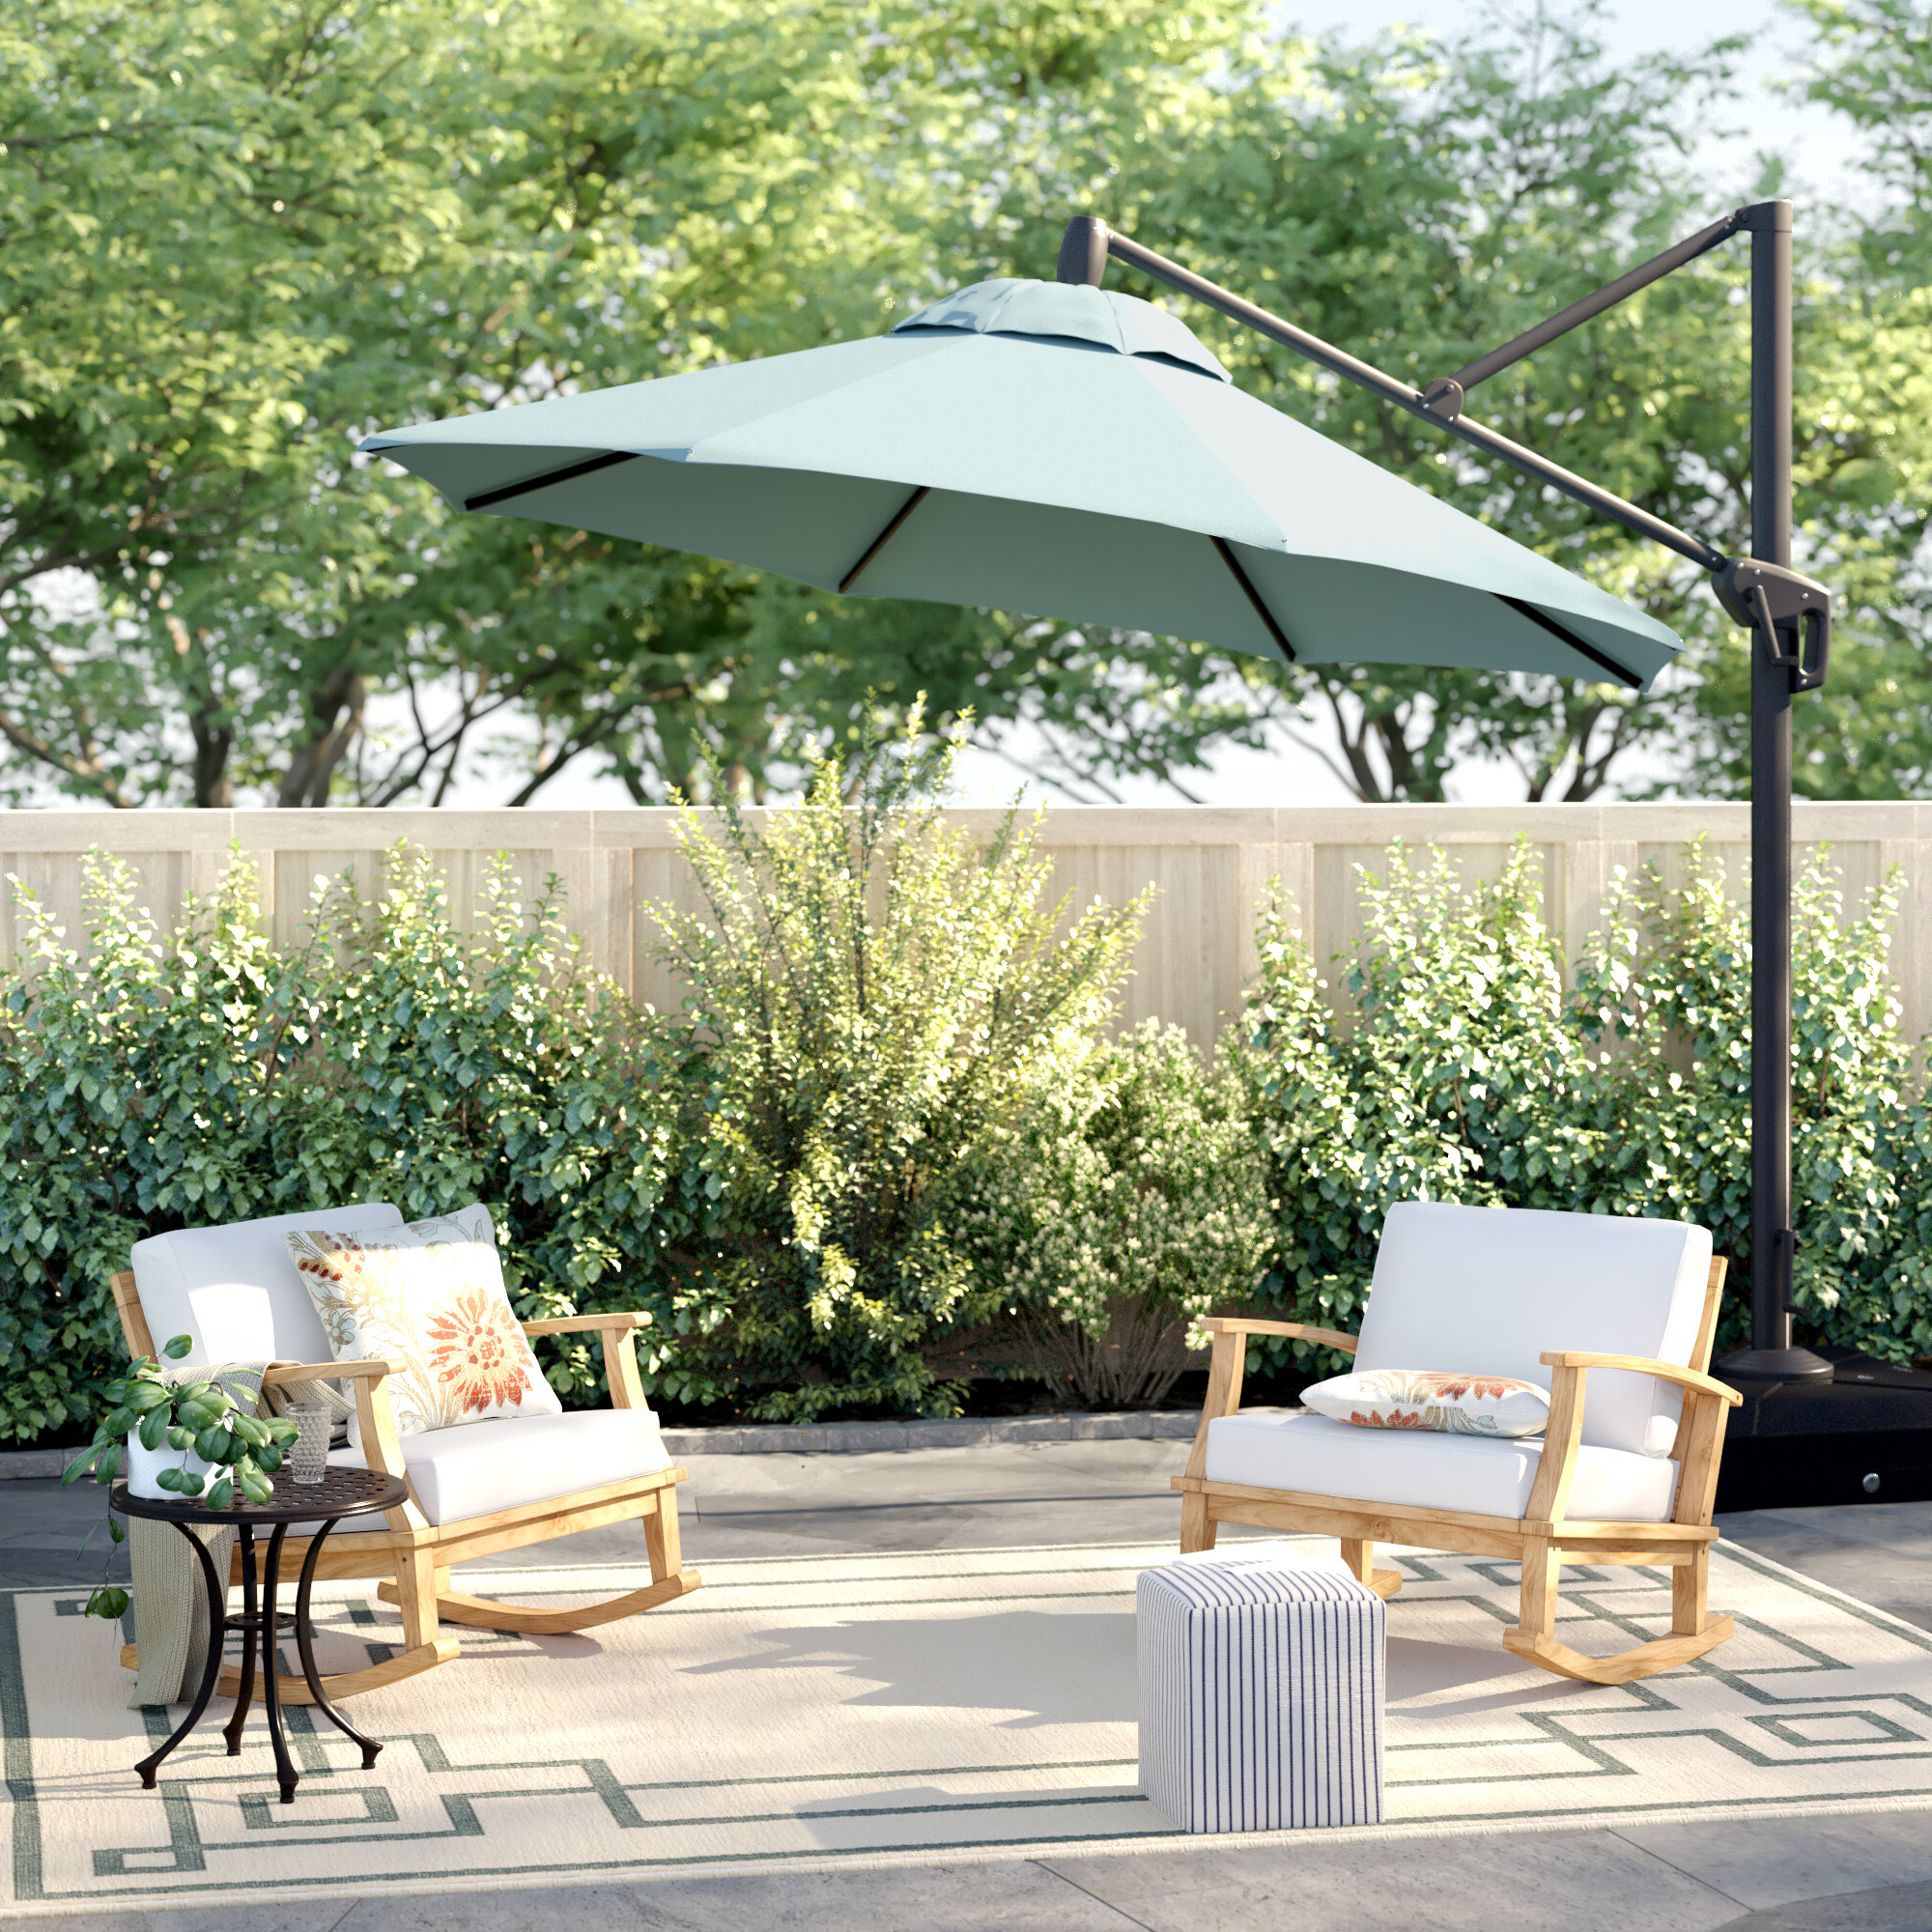 Ceylon 10' Cantilever Sunbrella Umbrella Regarding Best And Newest Carlisle Cantilever Sunbrella Umbrellas (View 10 of 20)